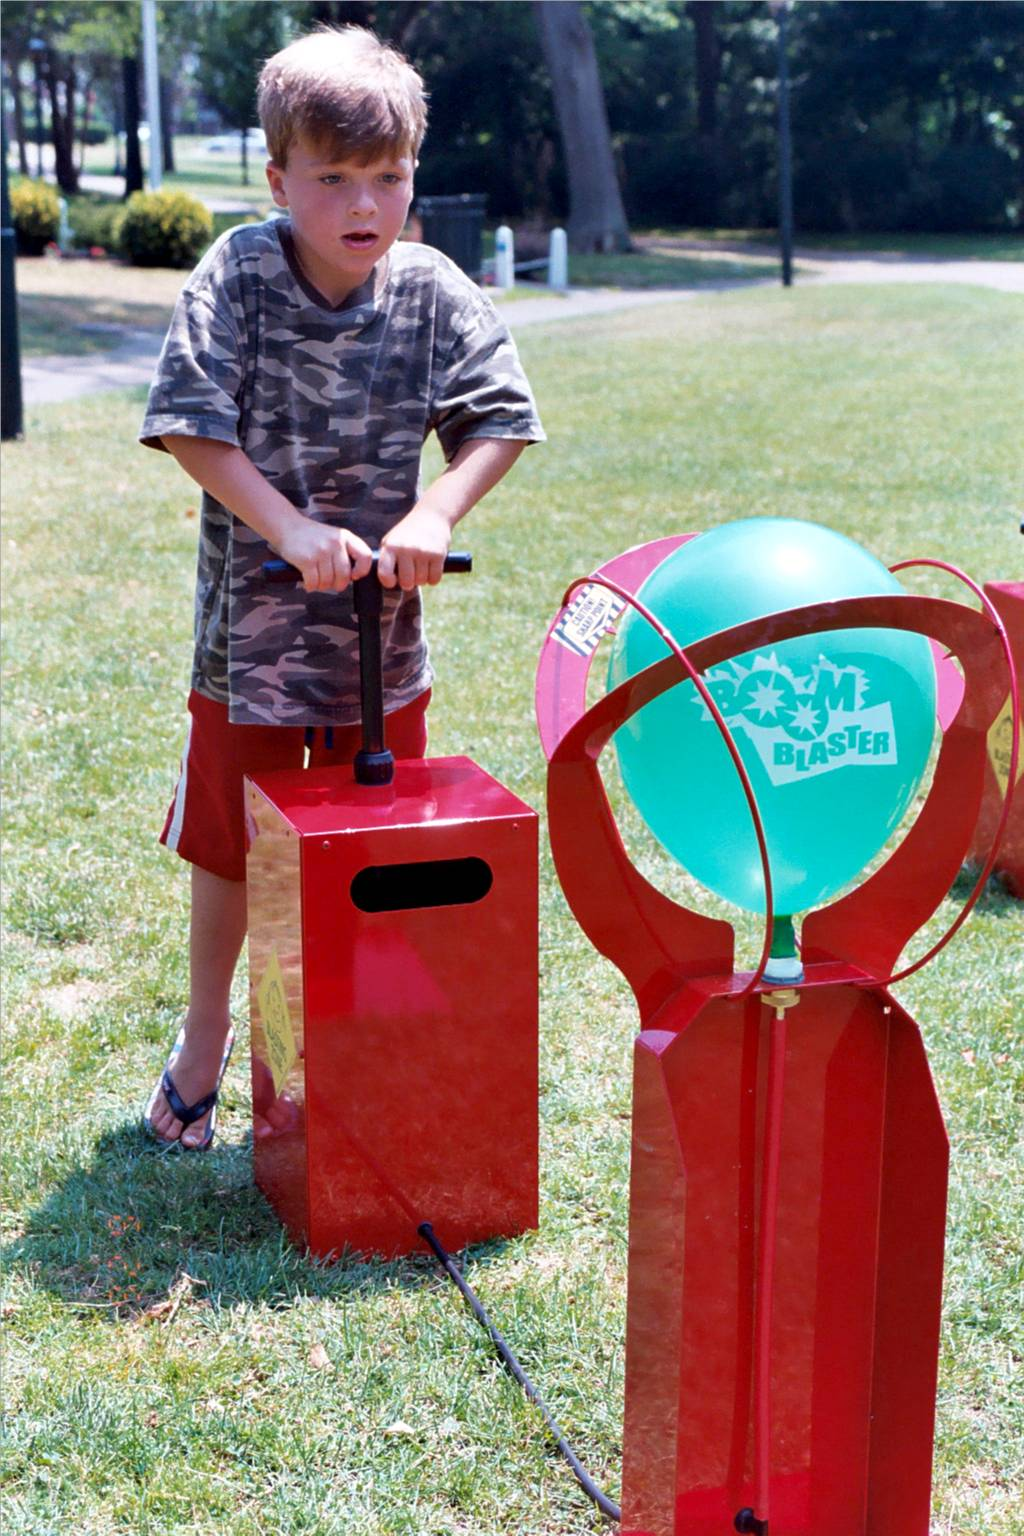 A young boy is trying his luck with Boom Blasters. Rent Boom Blasters from Bette's Party Rentals.